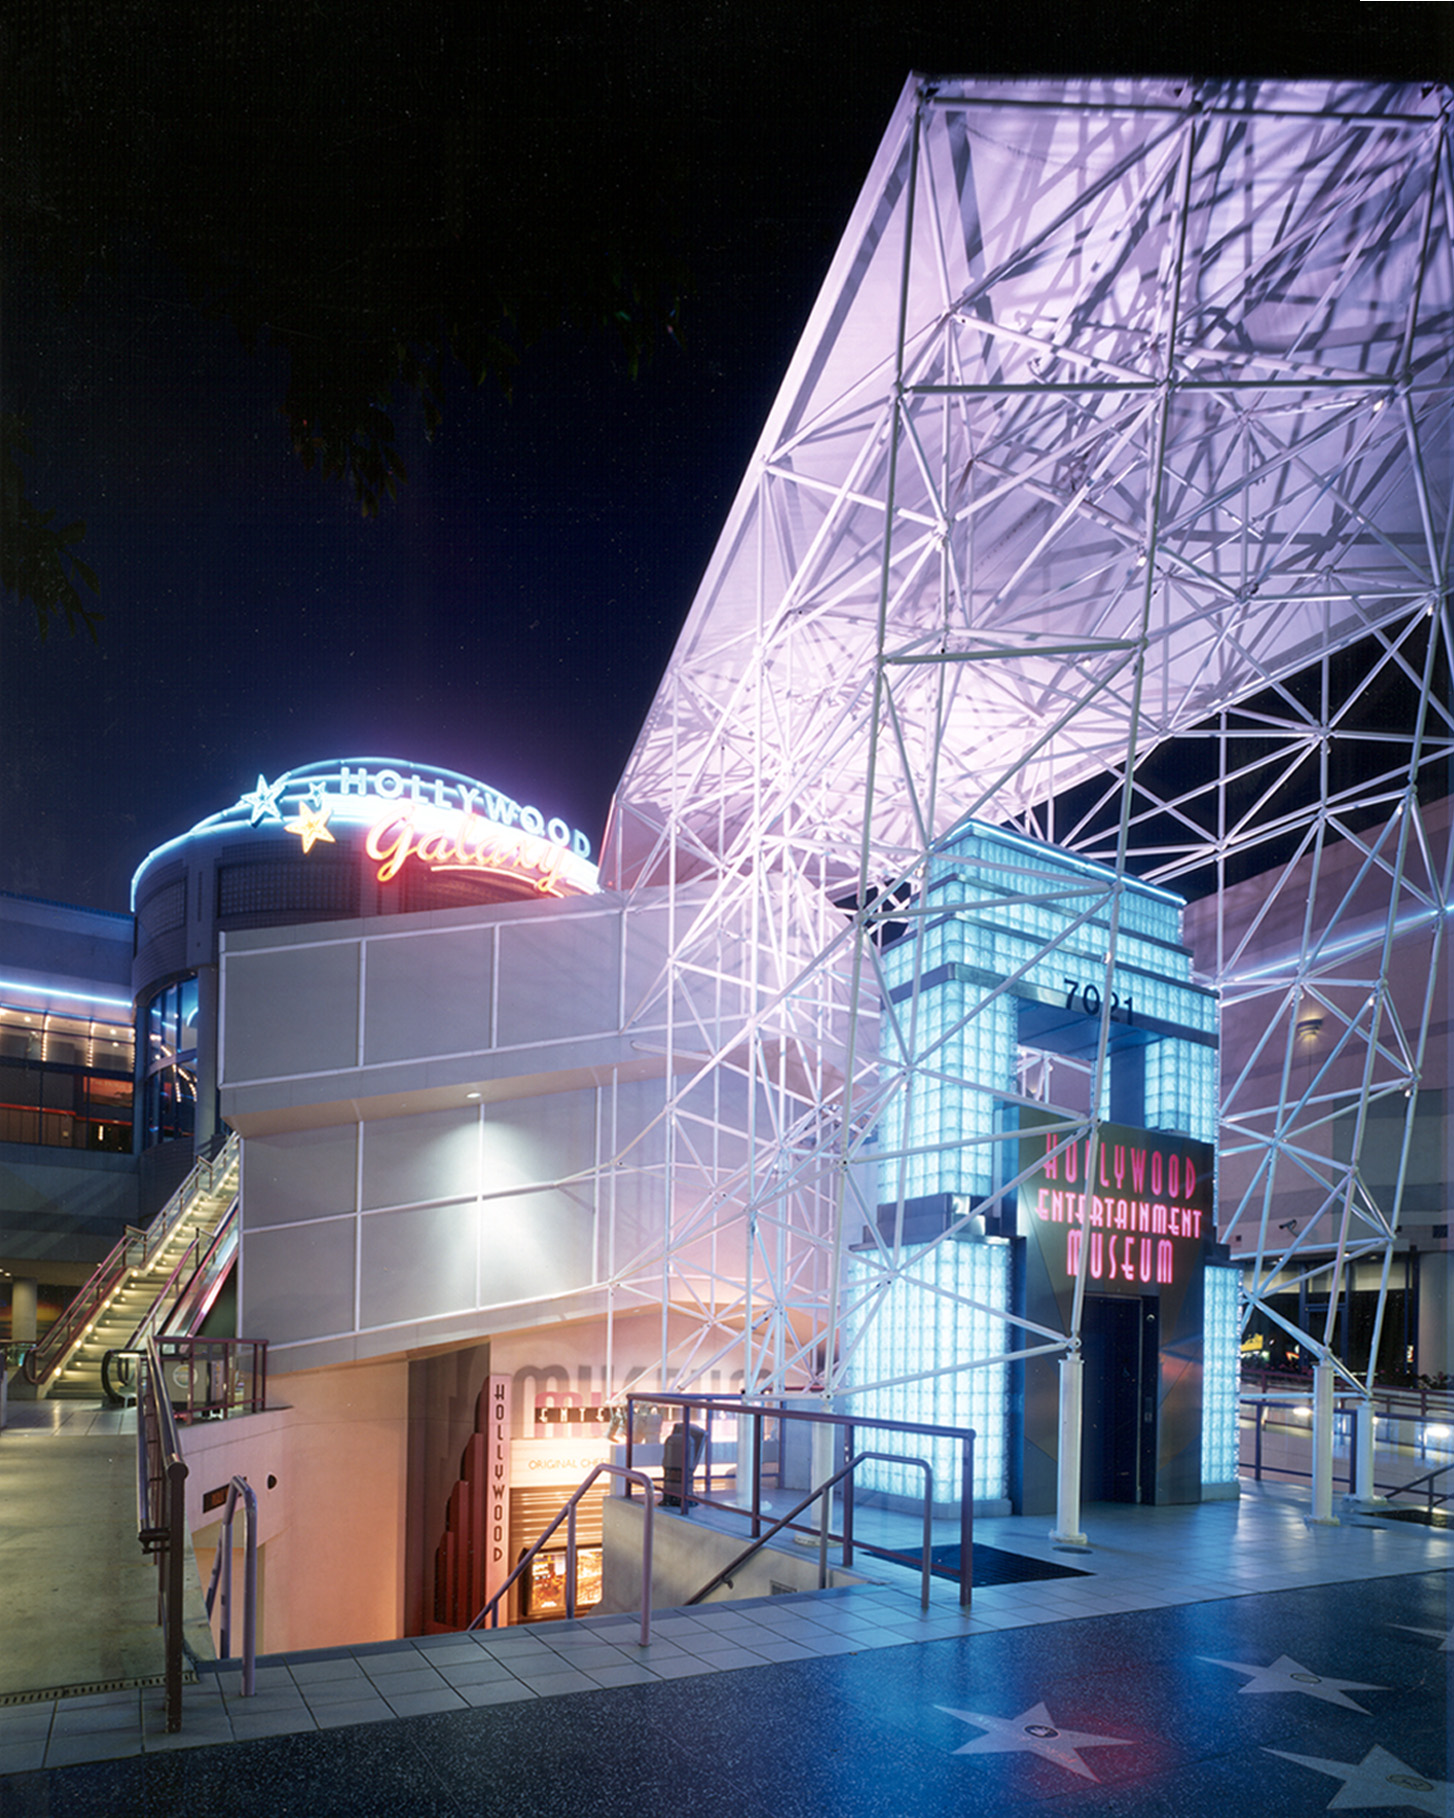 Hollywood Entertainment Museum.jpg